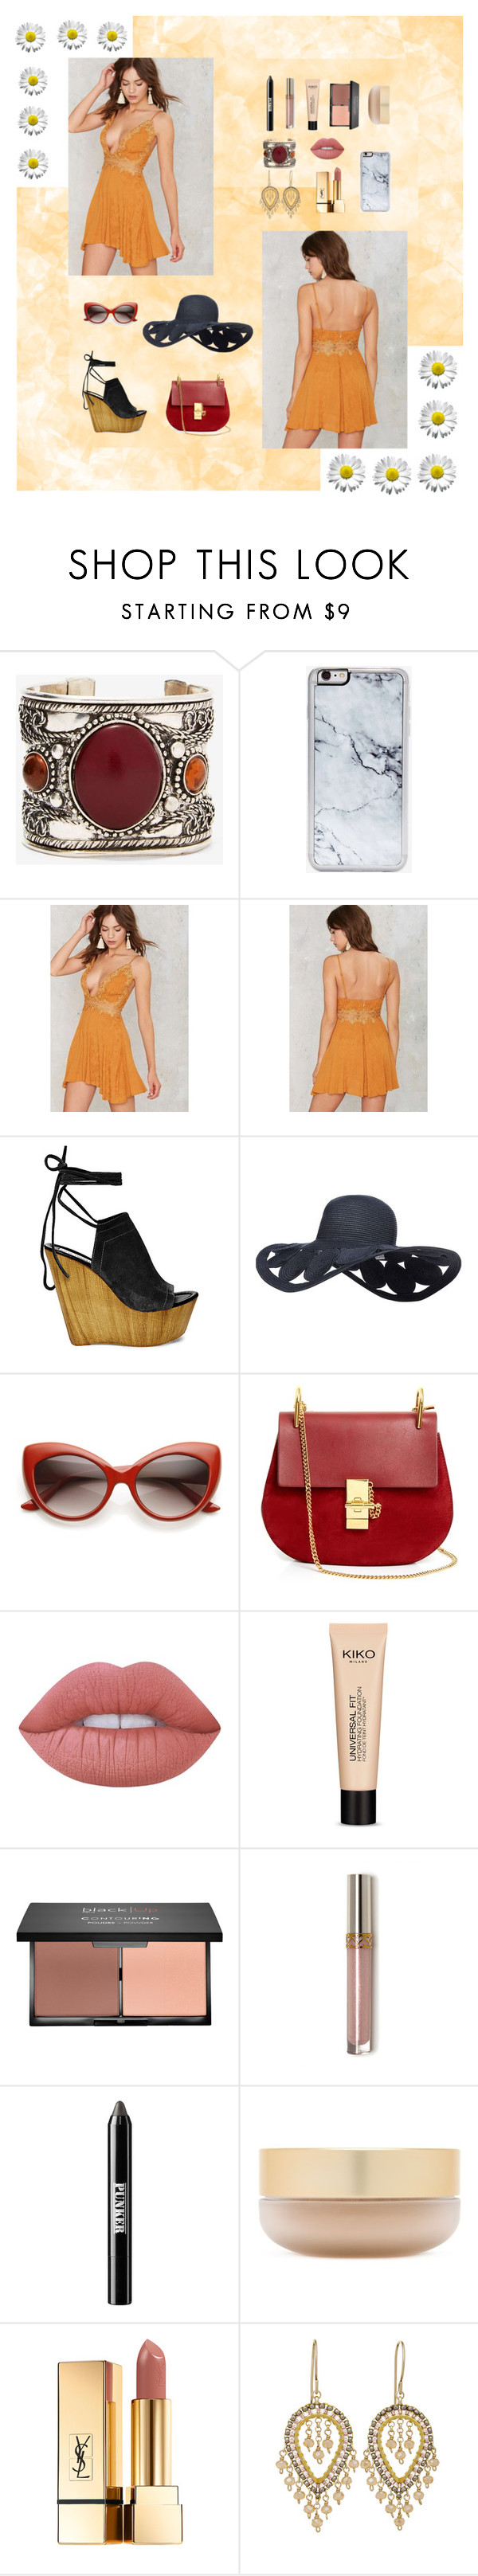 """Orange Summer Dress"" by giolina-st on Polyvore featuring Zero Gravity, Steve Madden, Chloé, Lime Crime, blacklUp, Ardency Inn, Eve Lom and Yves Saint Laurent"